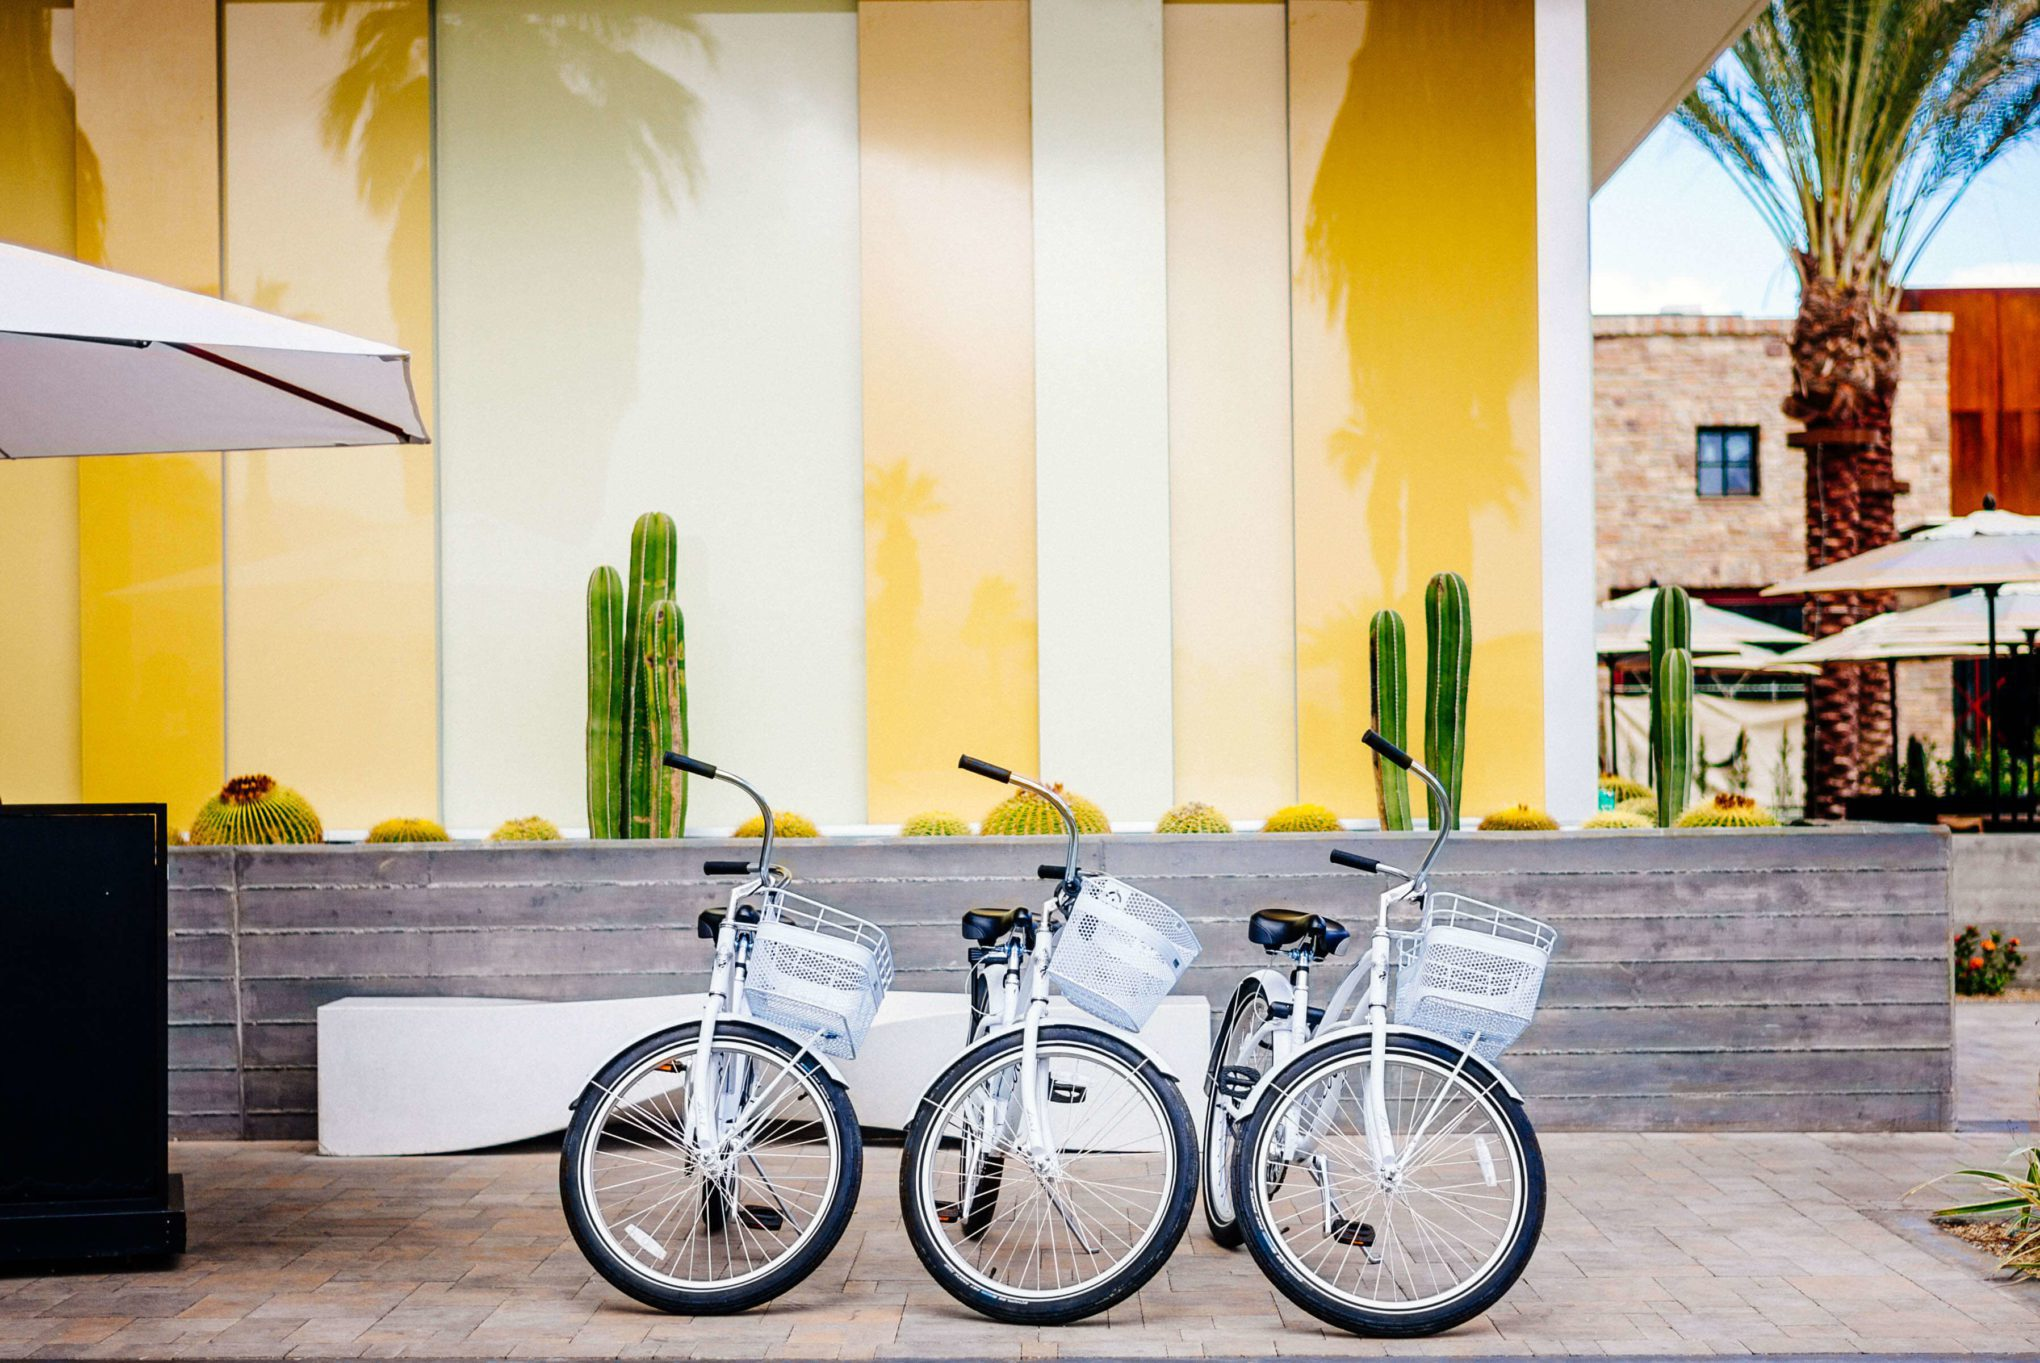 Take a bicycle to tour Palm Springs homes when you stay at the Kimpton Rowan Hotel in Palm Springs is a dessert retreat, The Taste SF